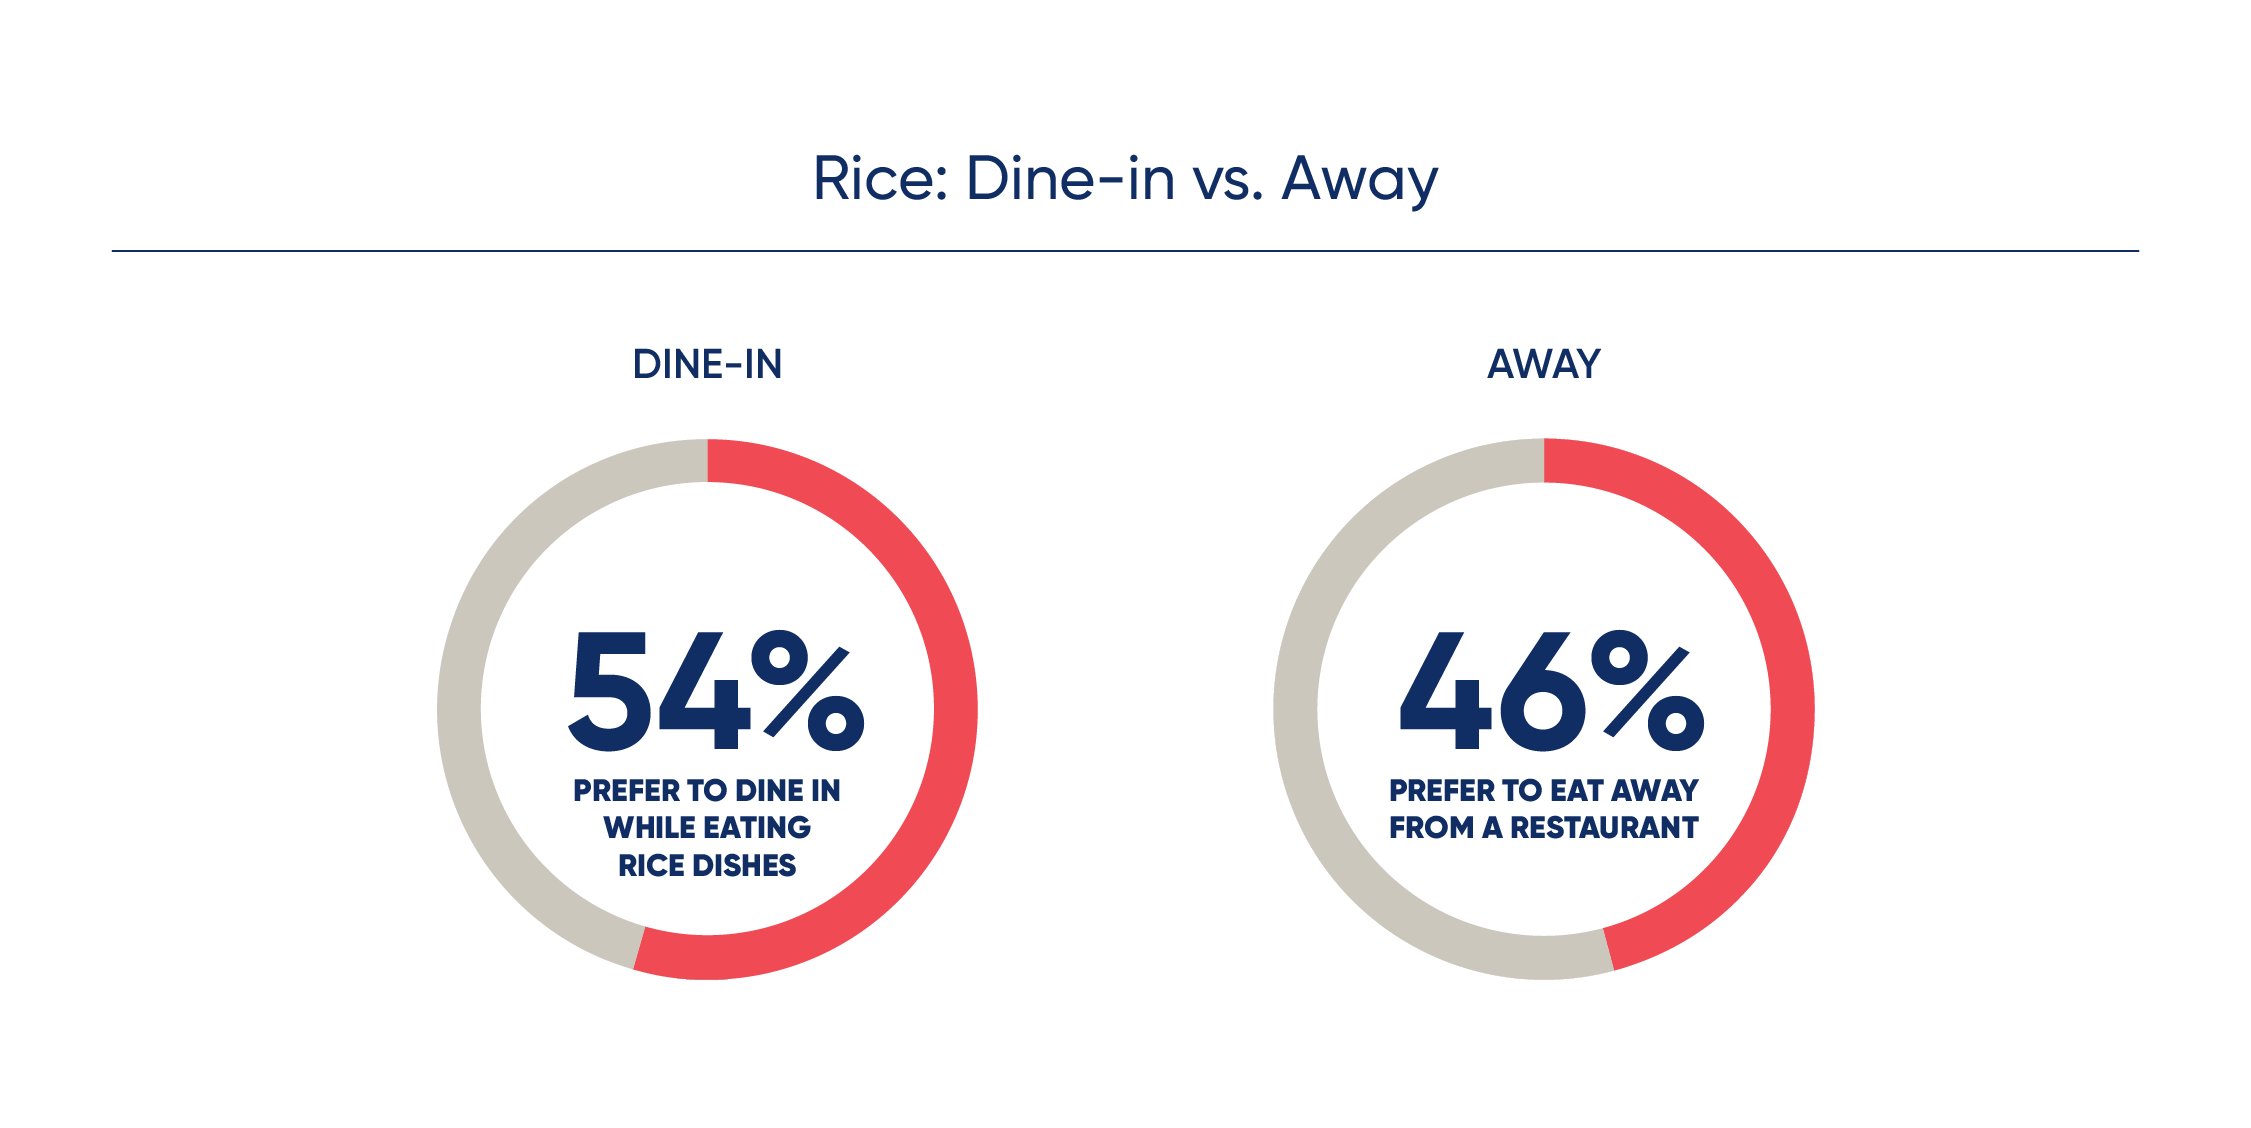 rice: dine in vs away 54% prefer to dine in while eating rice dishes while 46% of consumers prefer to eat away from a restaurant